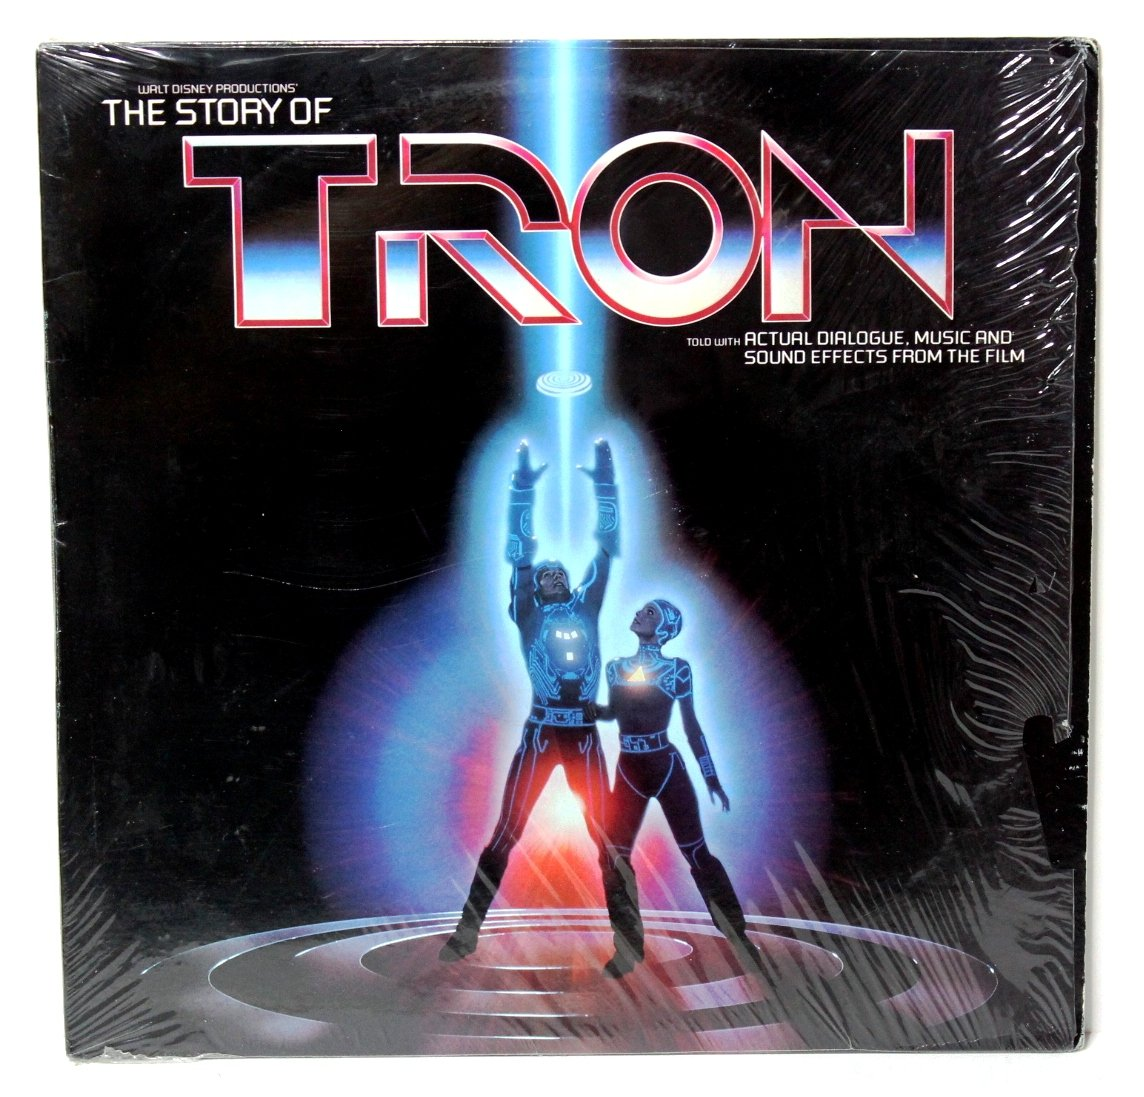 THE STORY OF TRON; Walt Disney Productions, WDP-2517, 1982